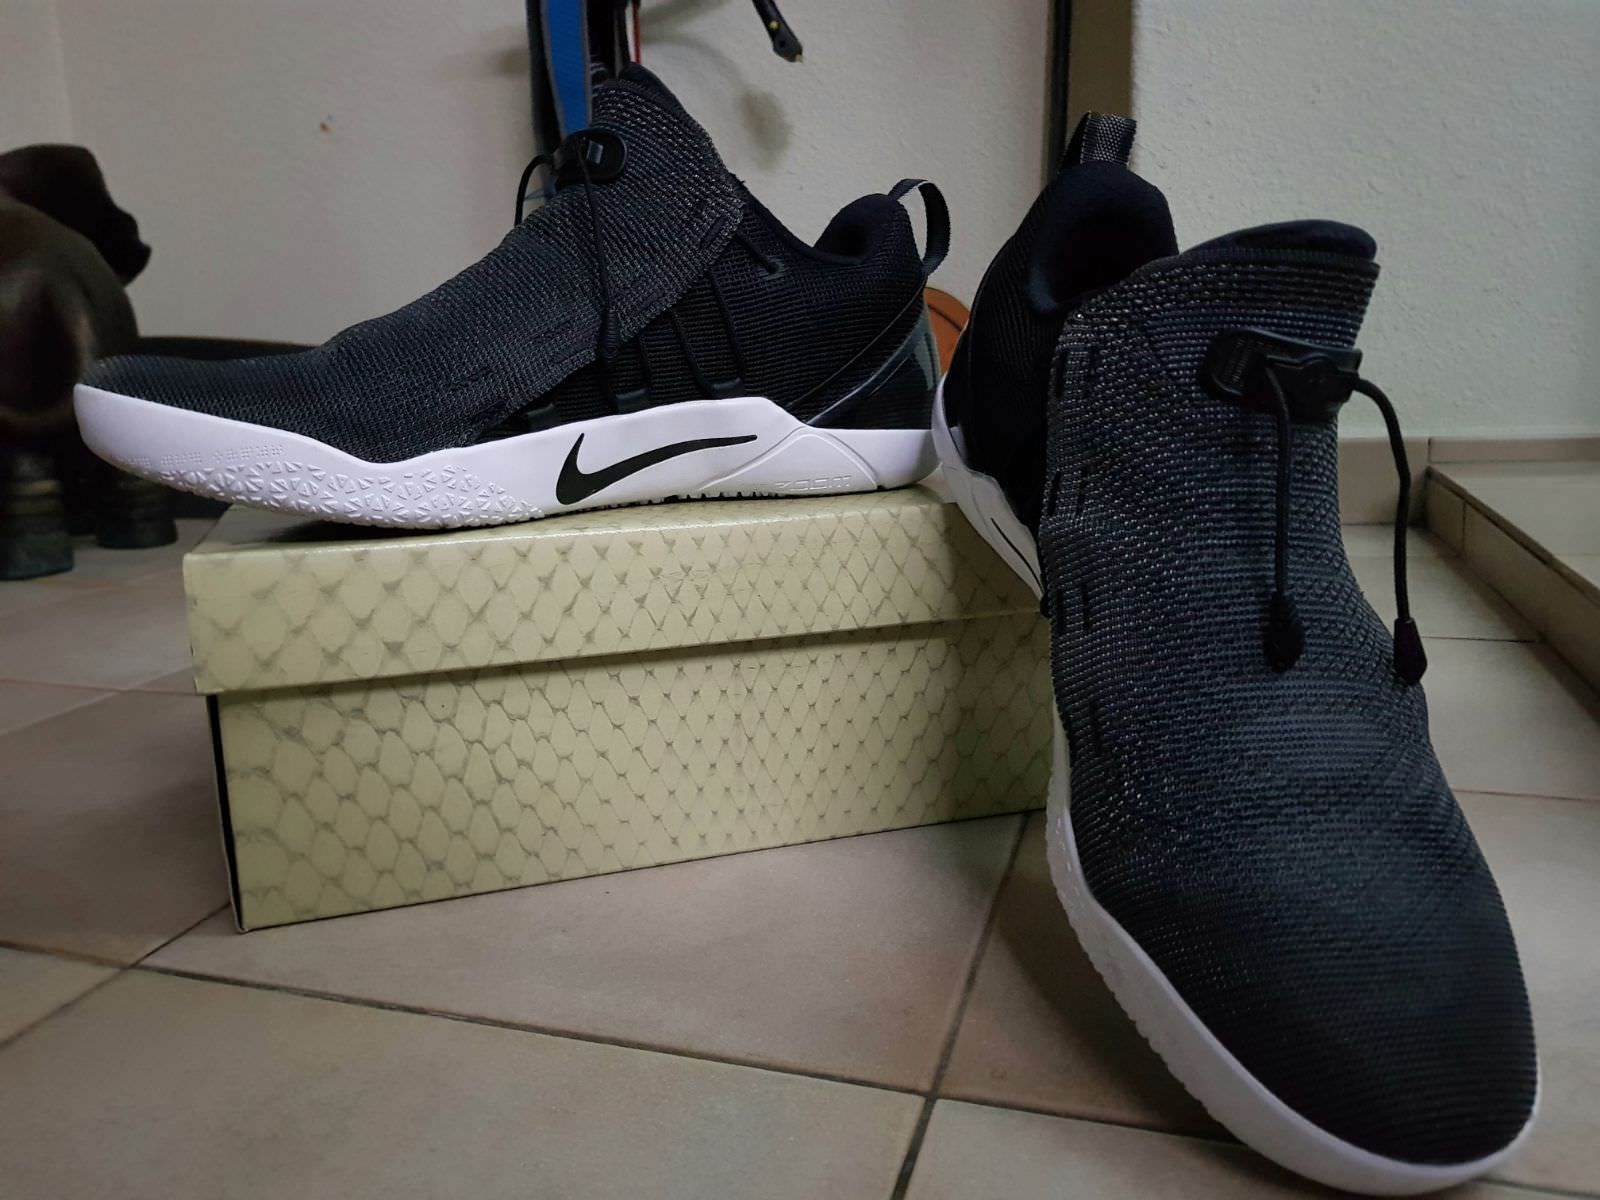 5b144c9ea8 Pickup] My first pair of sneakers actually worth something. | Nike ...